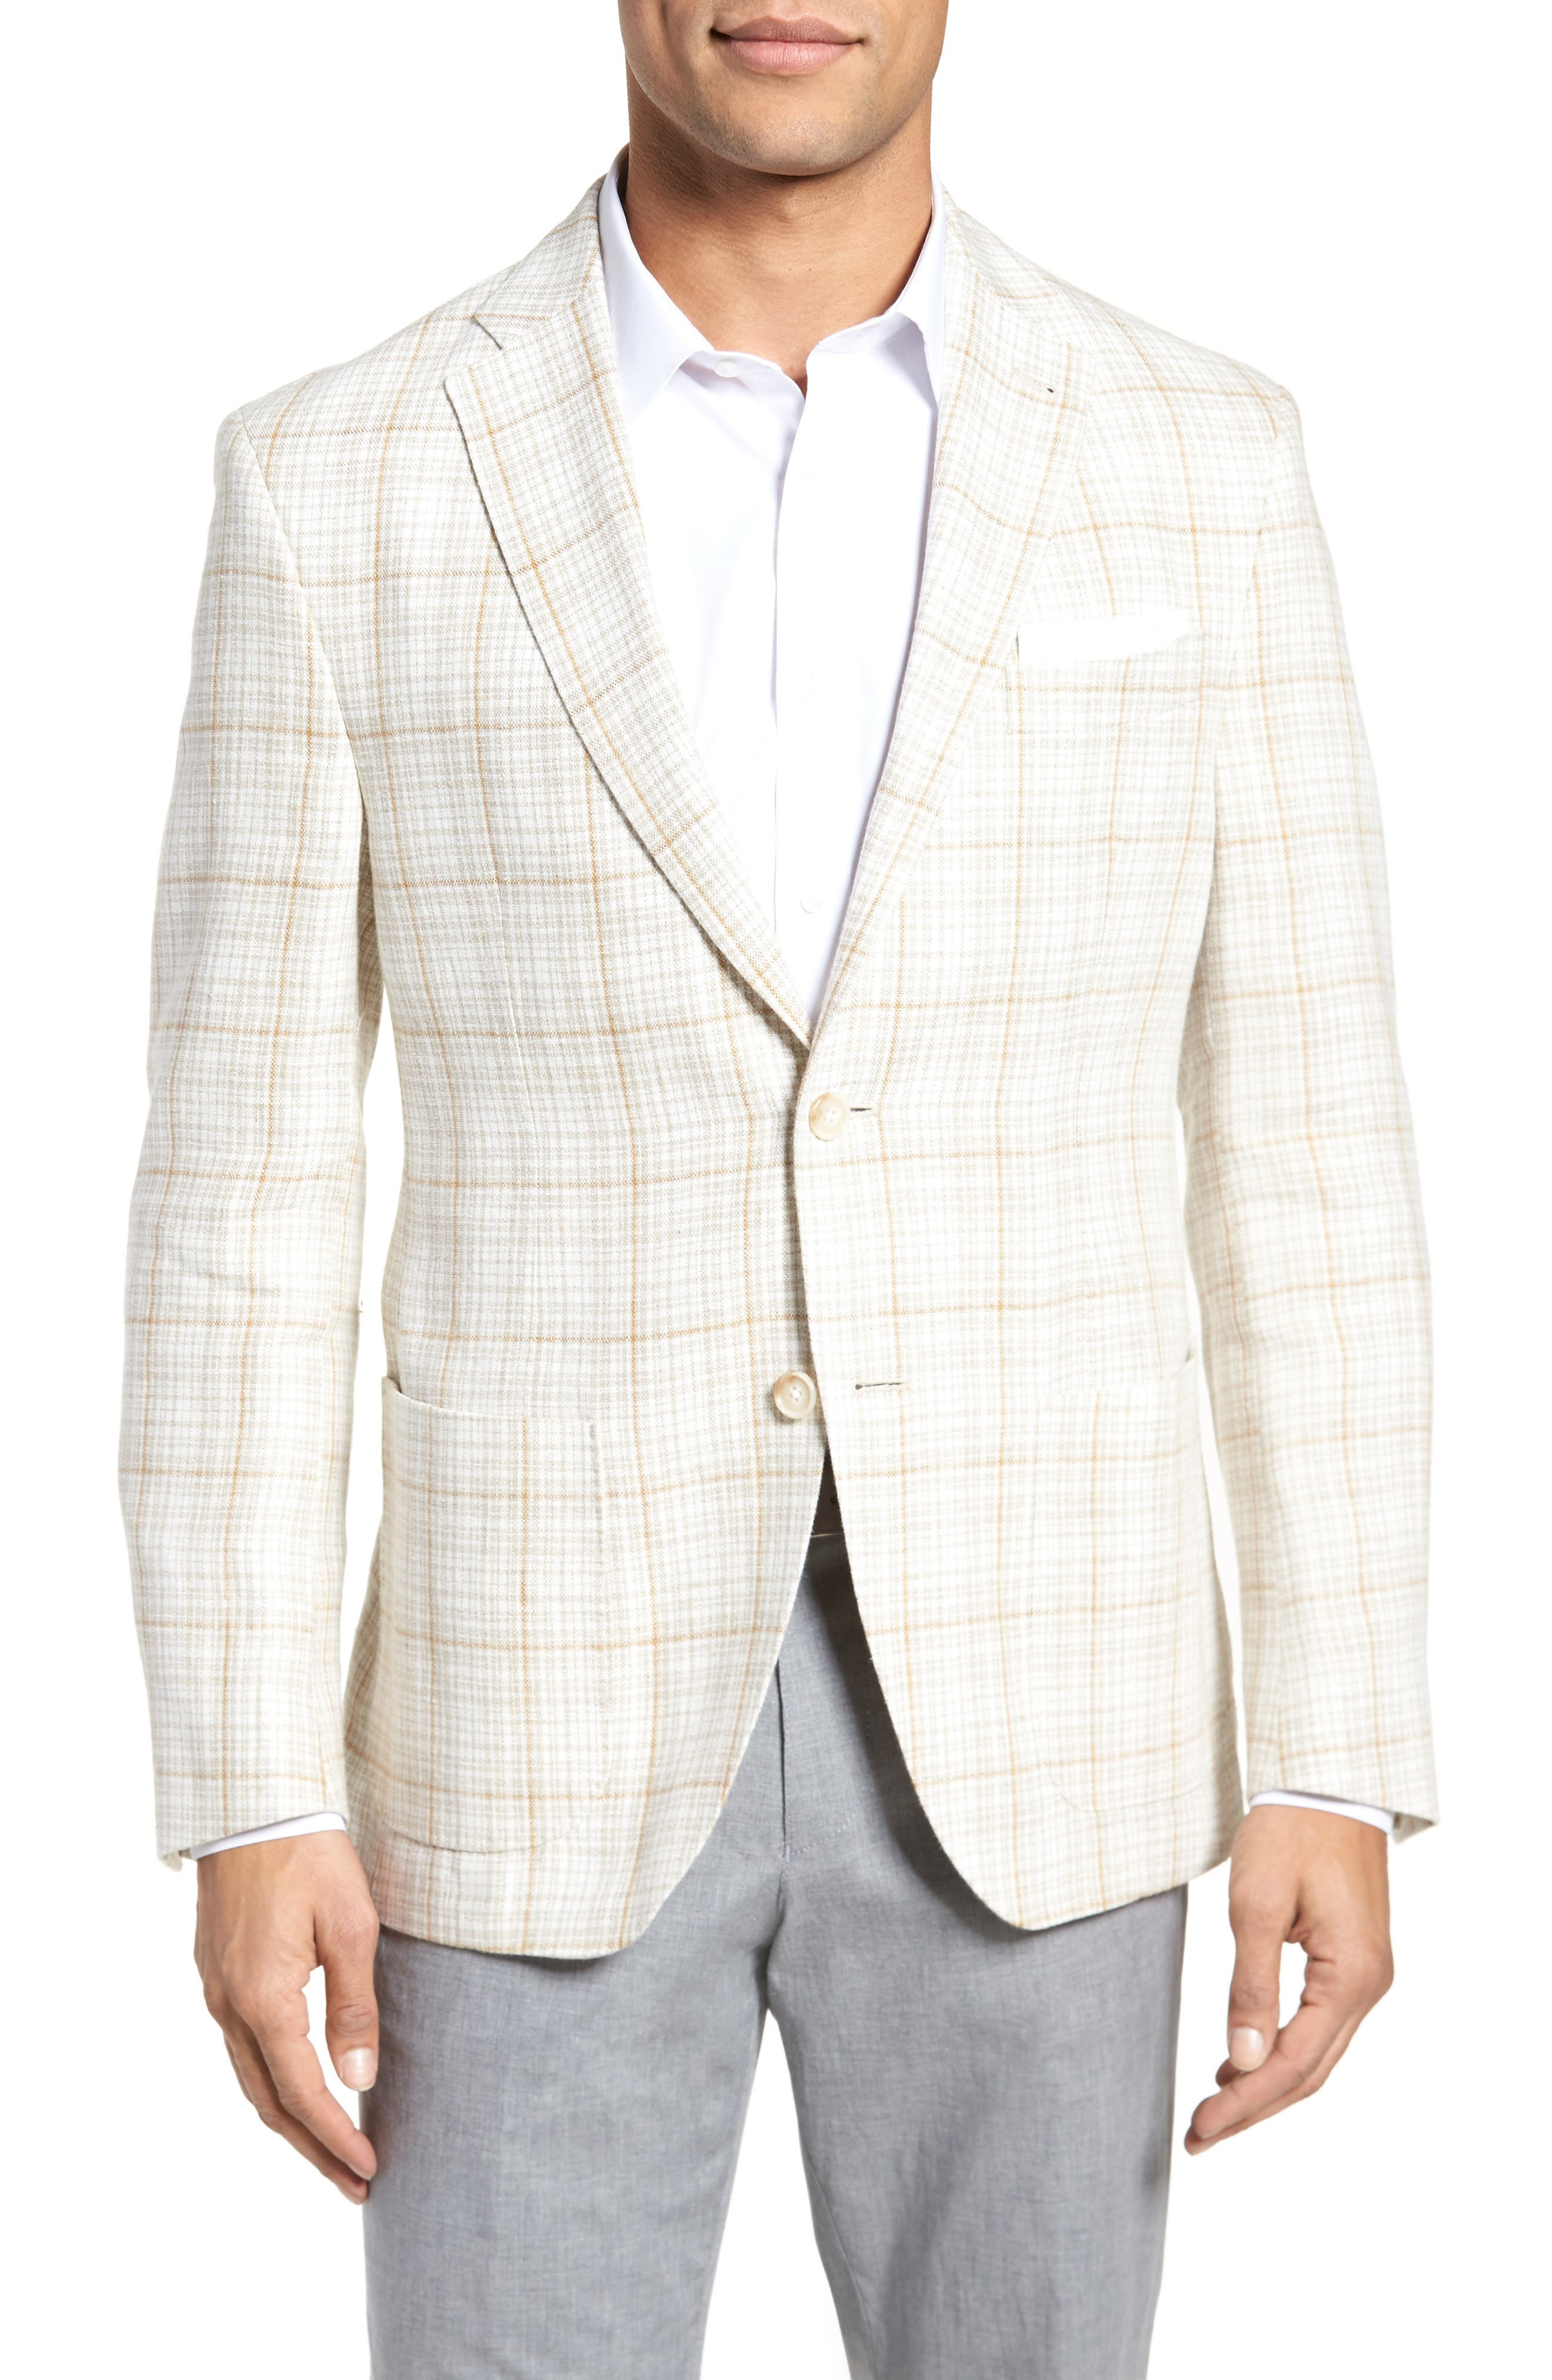 Trent Trim Fit Plaid Linen Sport Coat,                         Main,                         color, Light Cream